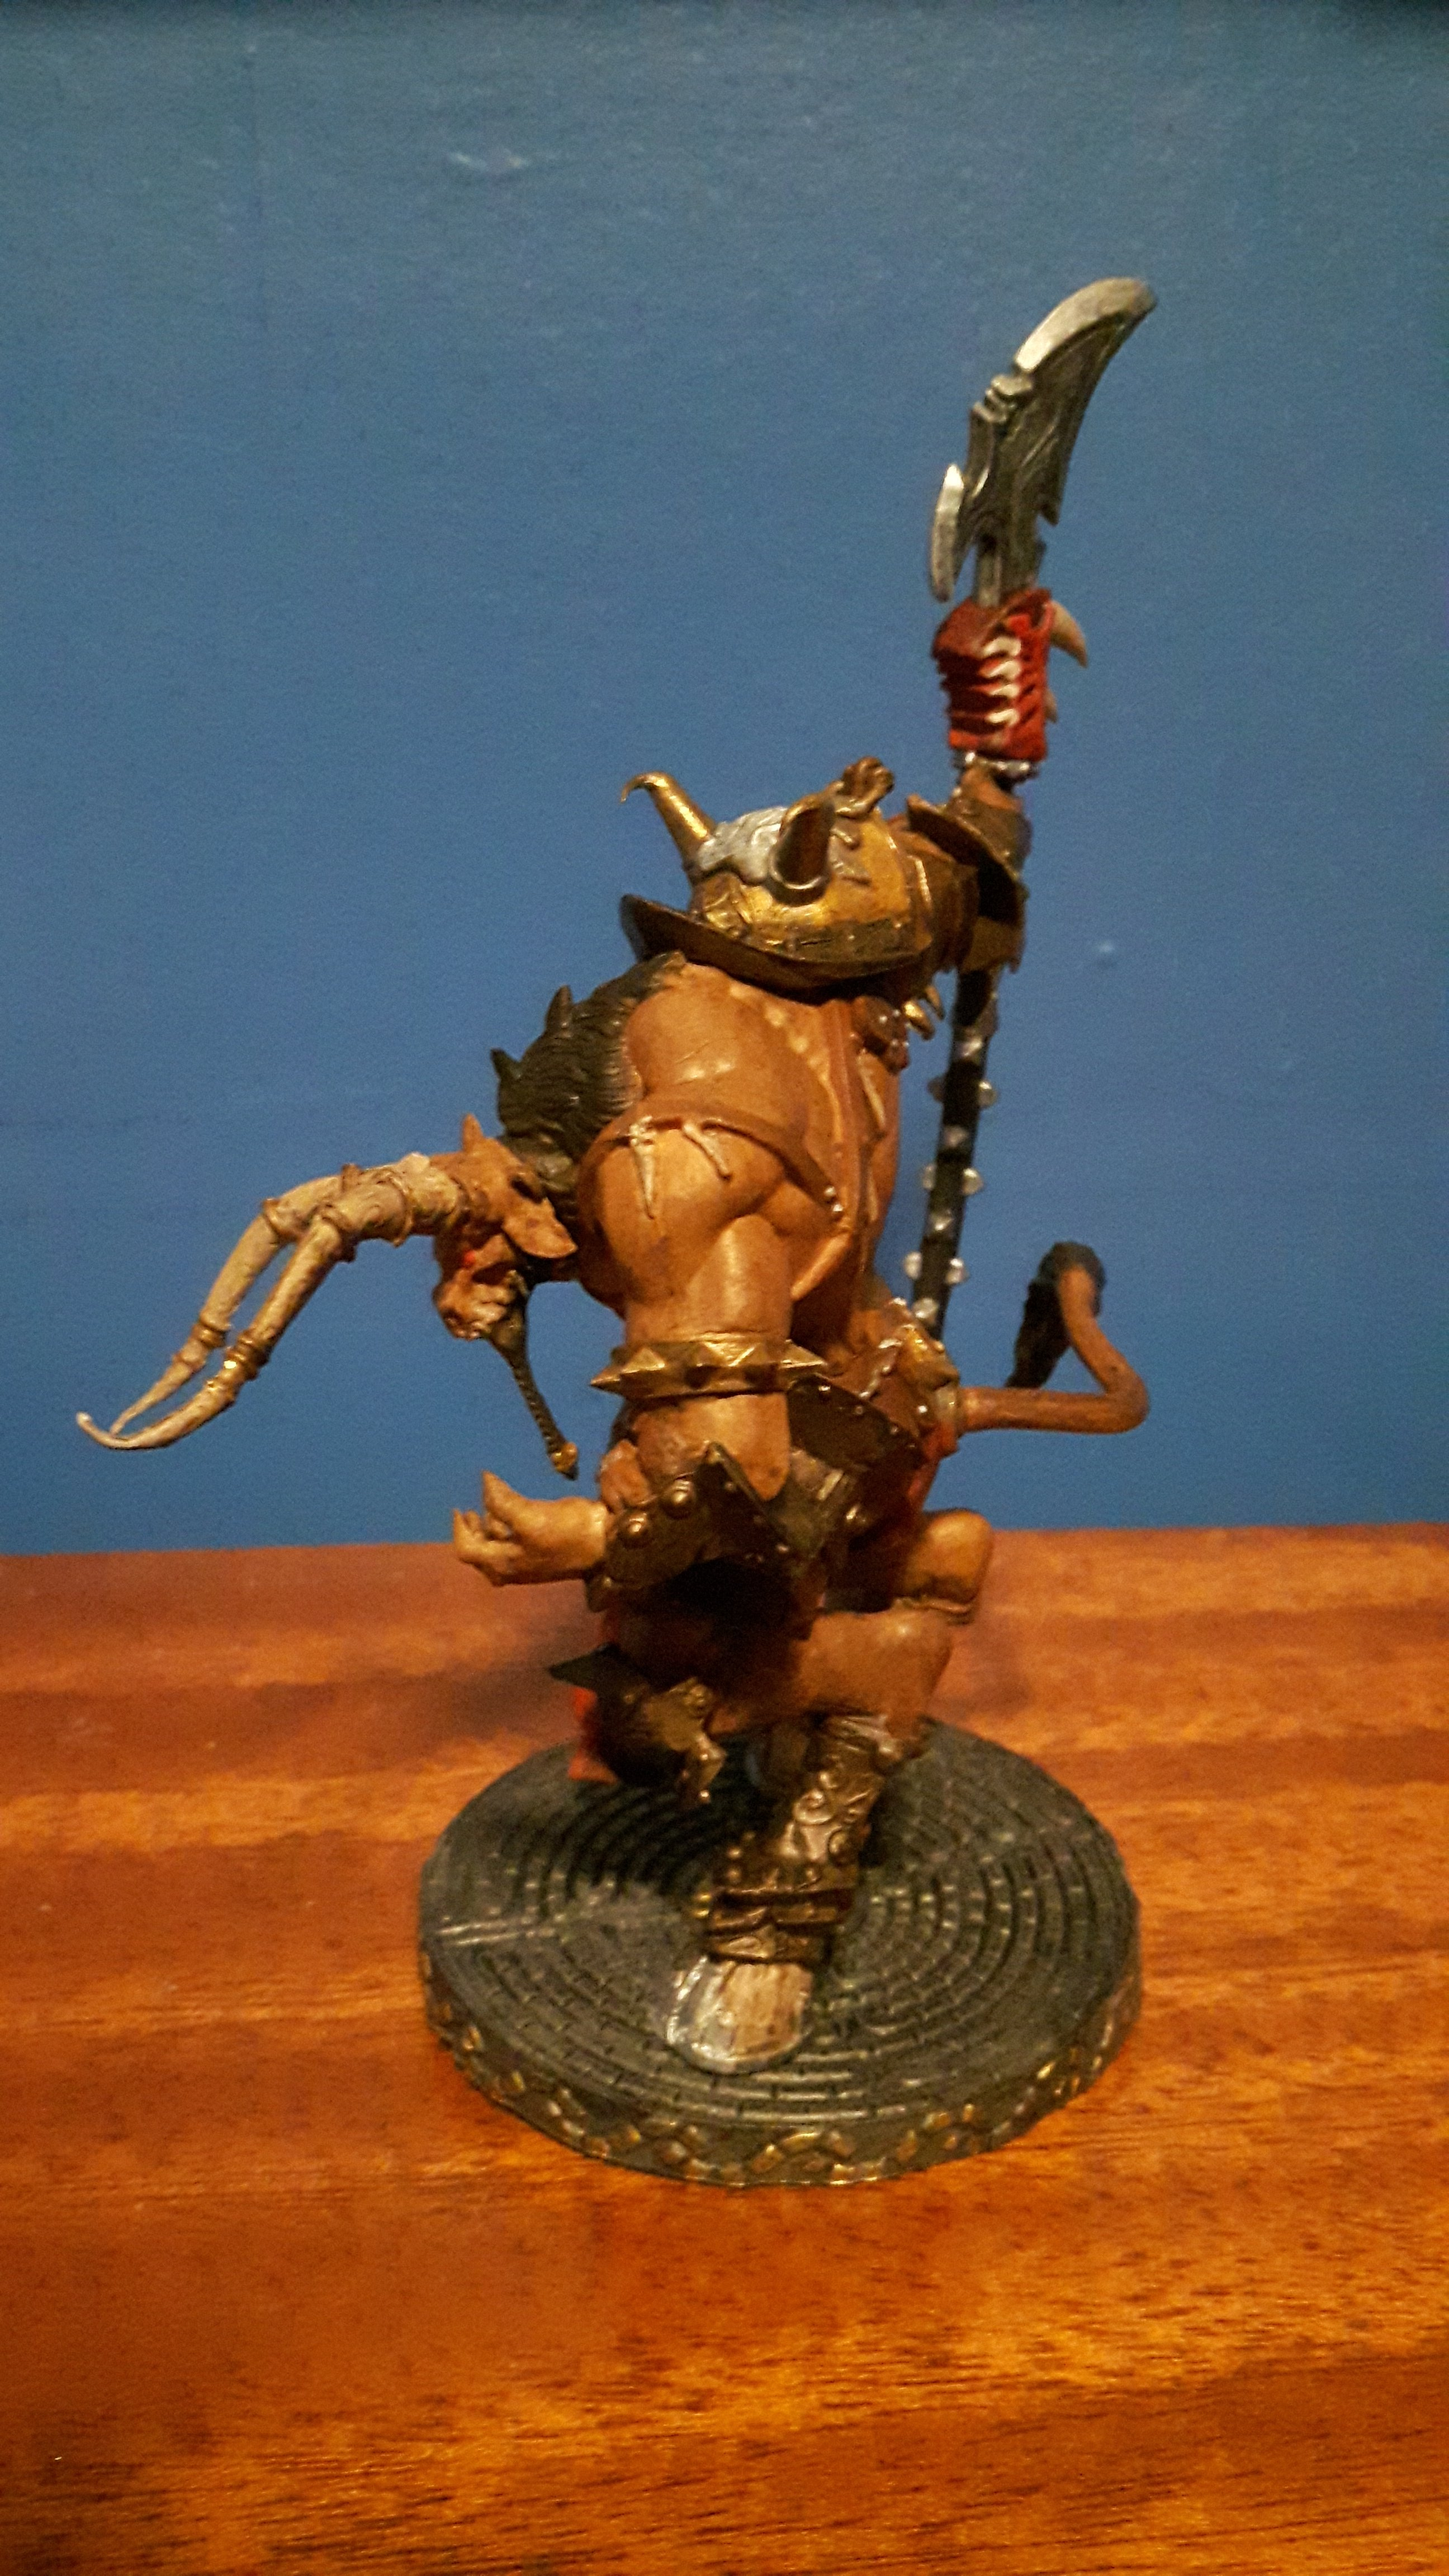 77376: Minotaur Demon Lord - Show Off - Reaper Message Board